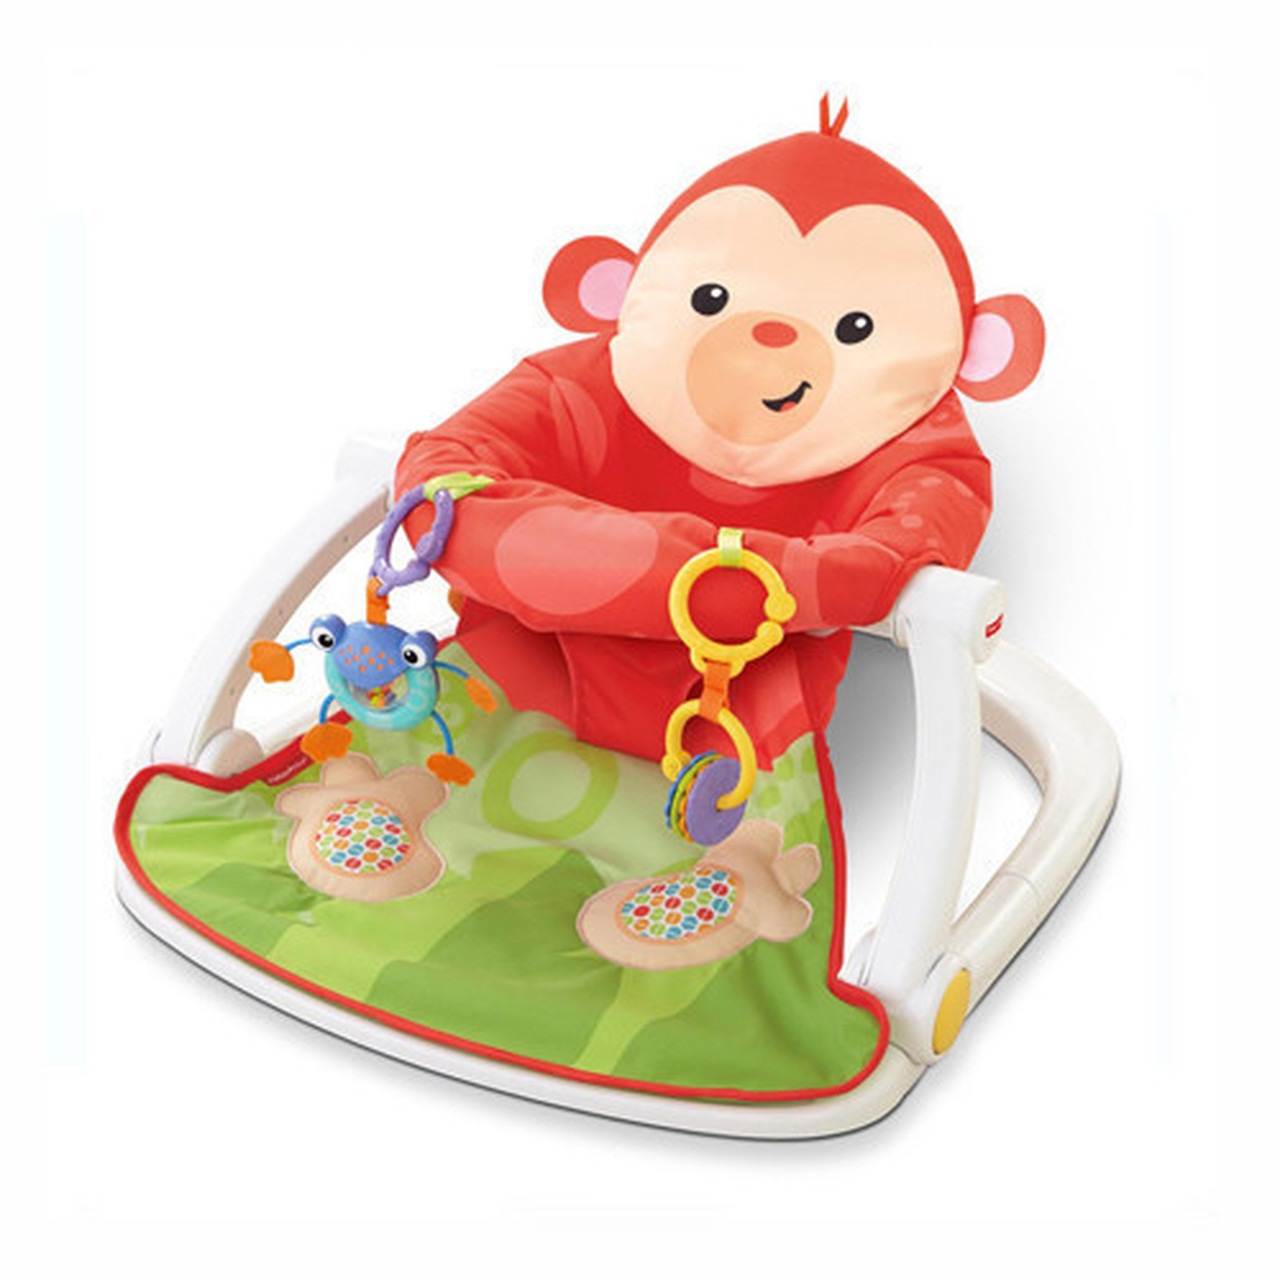 Fisher-Price Deluxe Sit-Me-Up Floor Seat